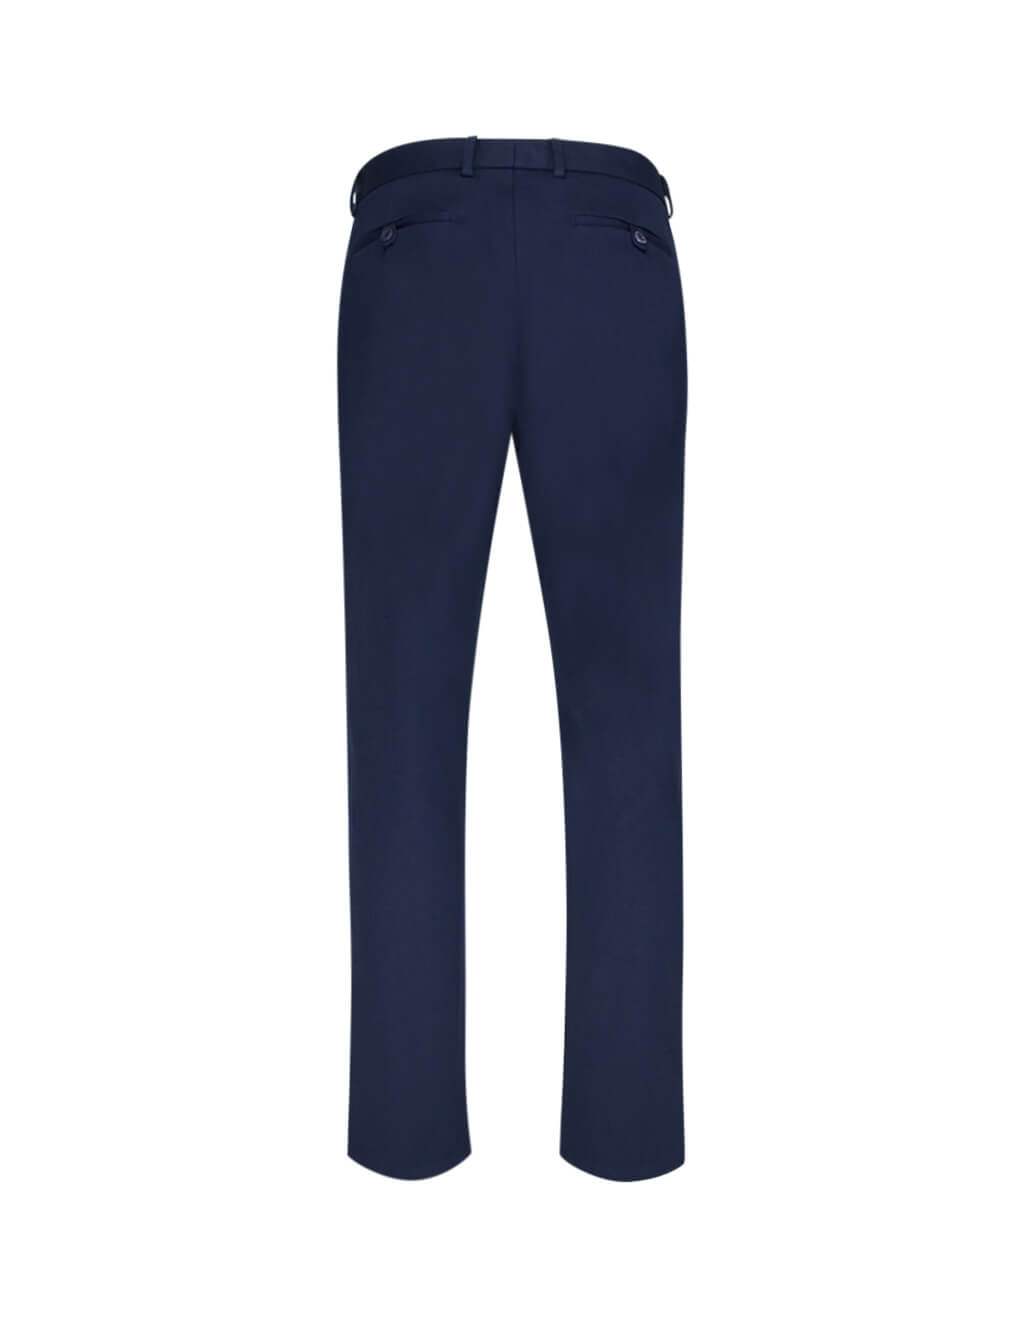 Maison Margiela Men's Navy Cotton Gabardine Trousers S30KA0588S52696524